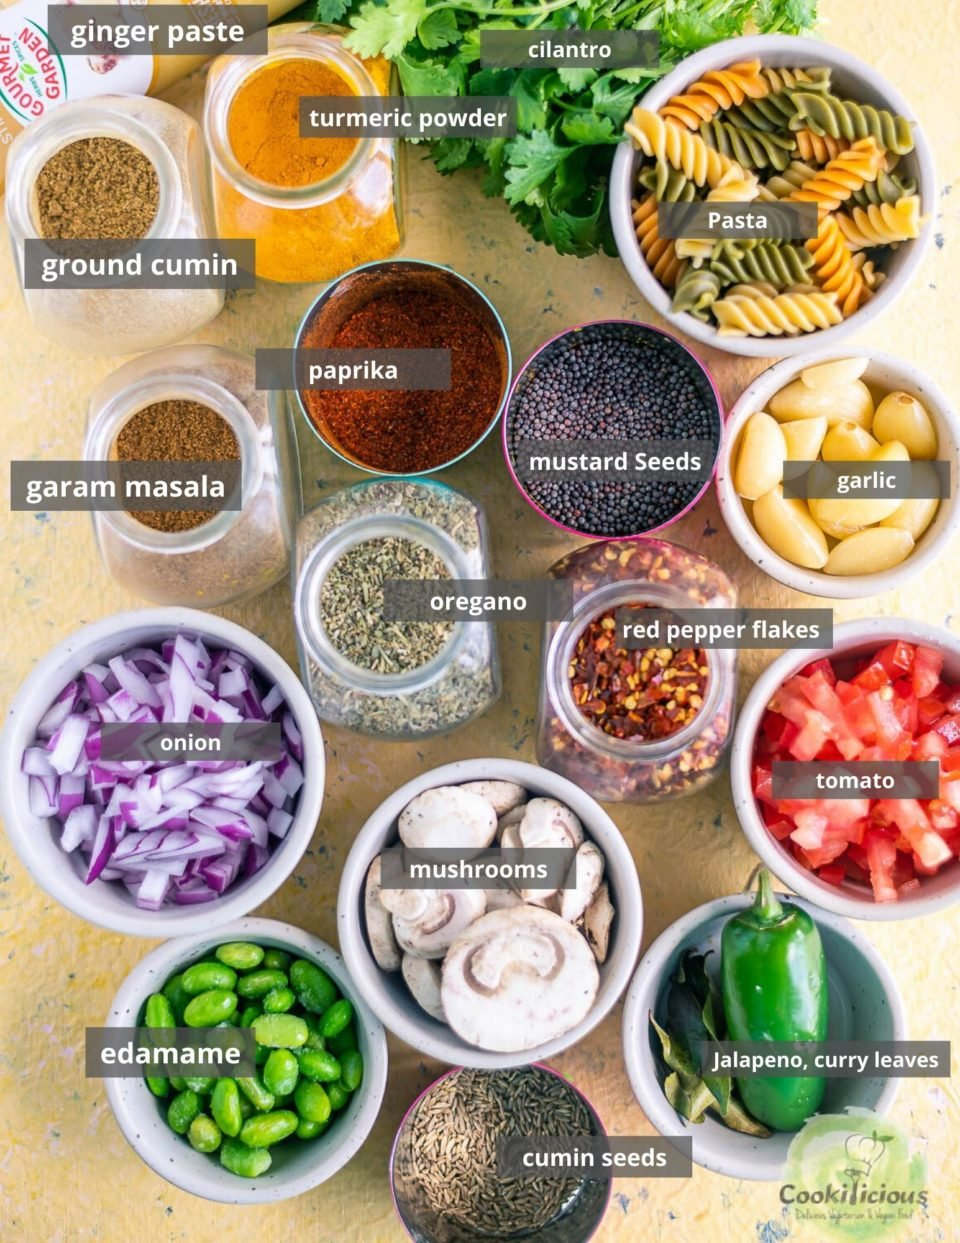 all the ingredients needed to make Indian Pasta Recipe | One-Pot Vegan Curry Pasta Dish placed in a tray with labels on them